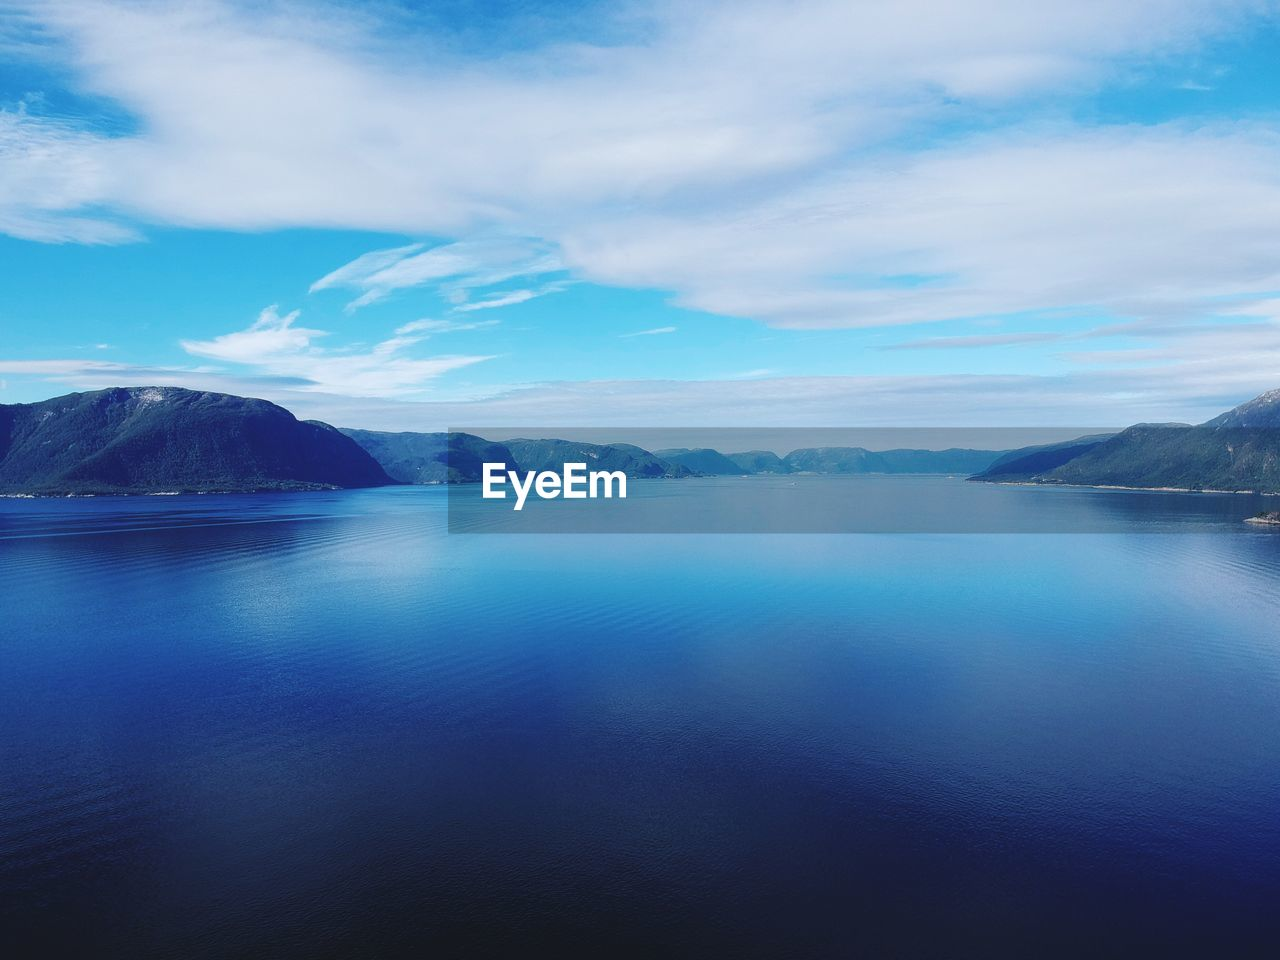 water, scenics - nature, cloud - sky, sky, tranquil scene, beauty in nature, tranquility, mountain, waterfront, nature, lake, day, idyllic, no people, non-urban scene, mountain range, blue, reflection, outdoors